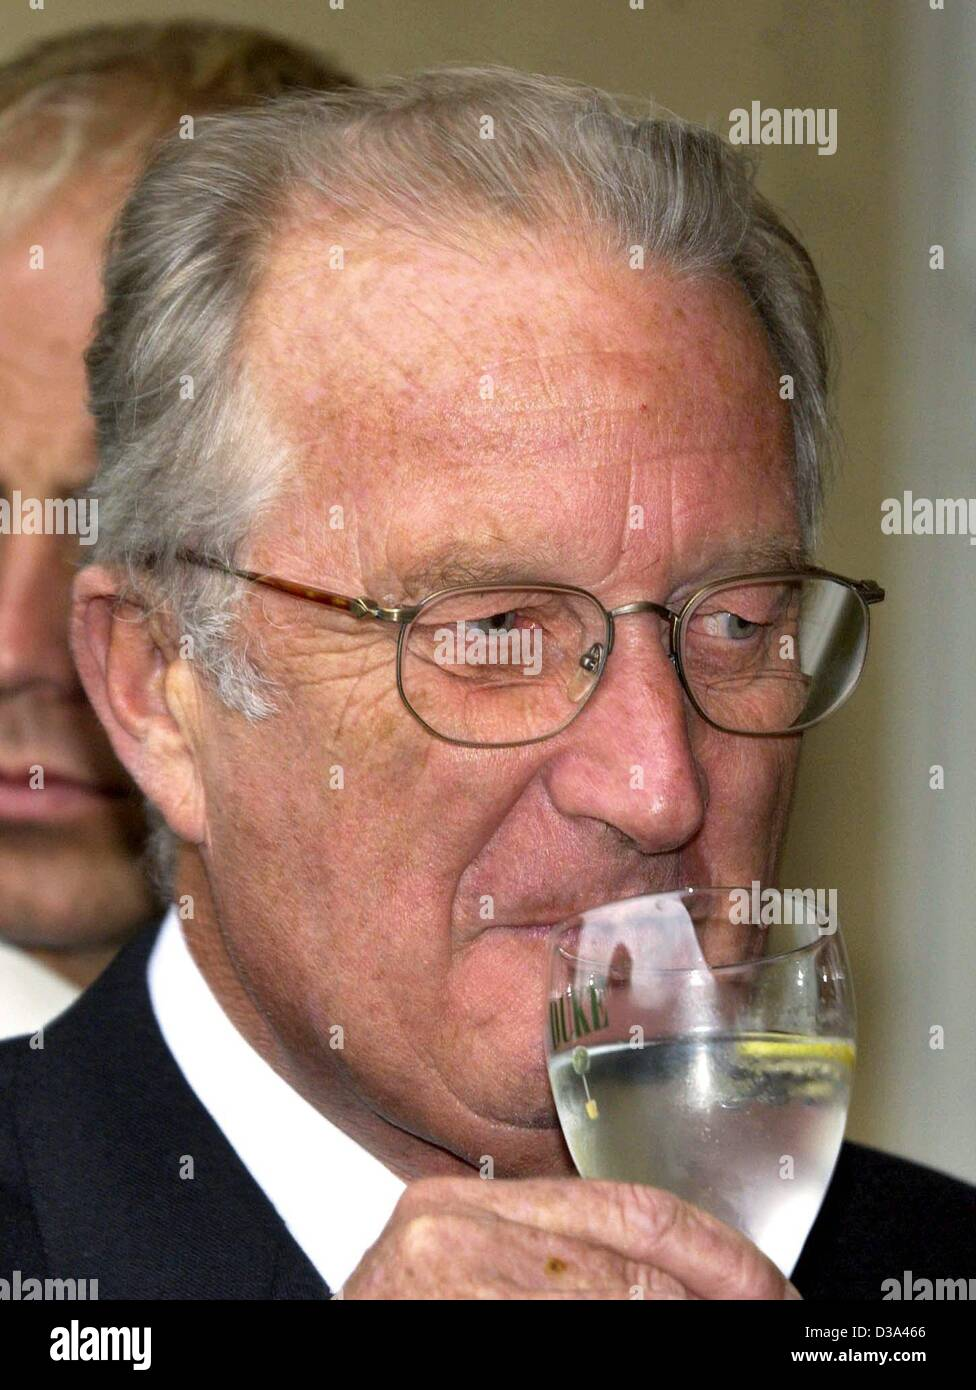 (dpa) - Belgian King Albert II drinks mineral water from a glass, pictured in Cologne, Germany, 7 June 2002. - Stock Image